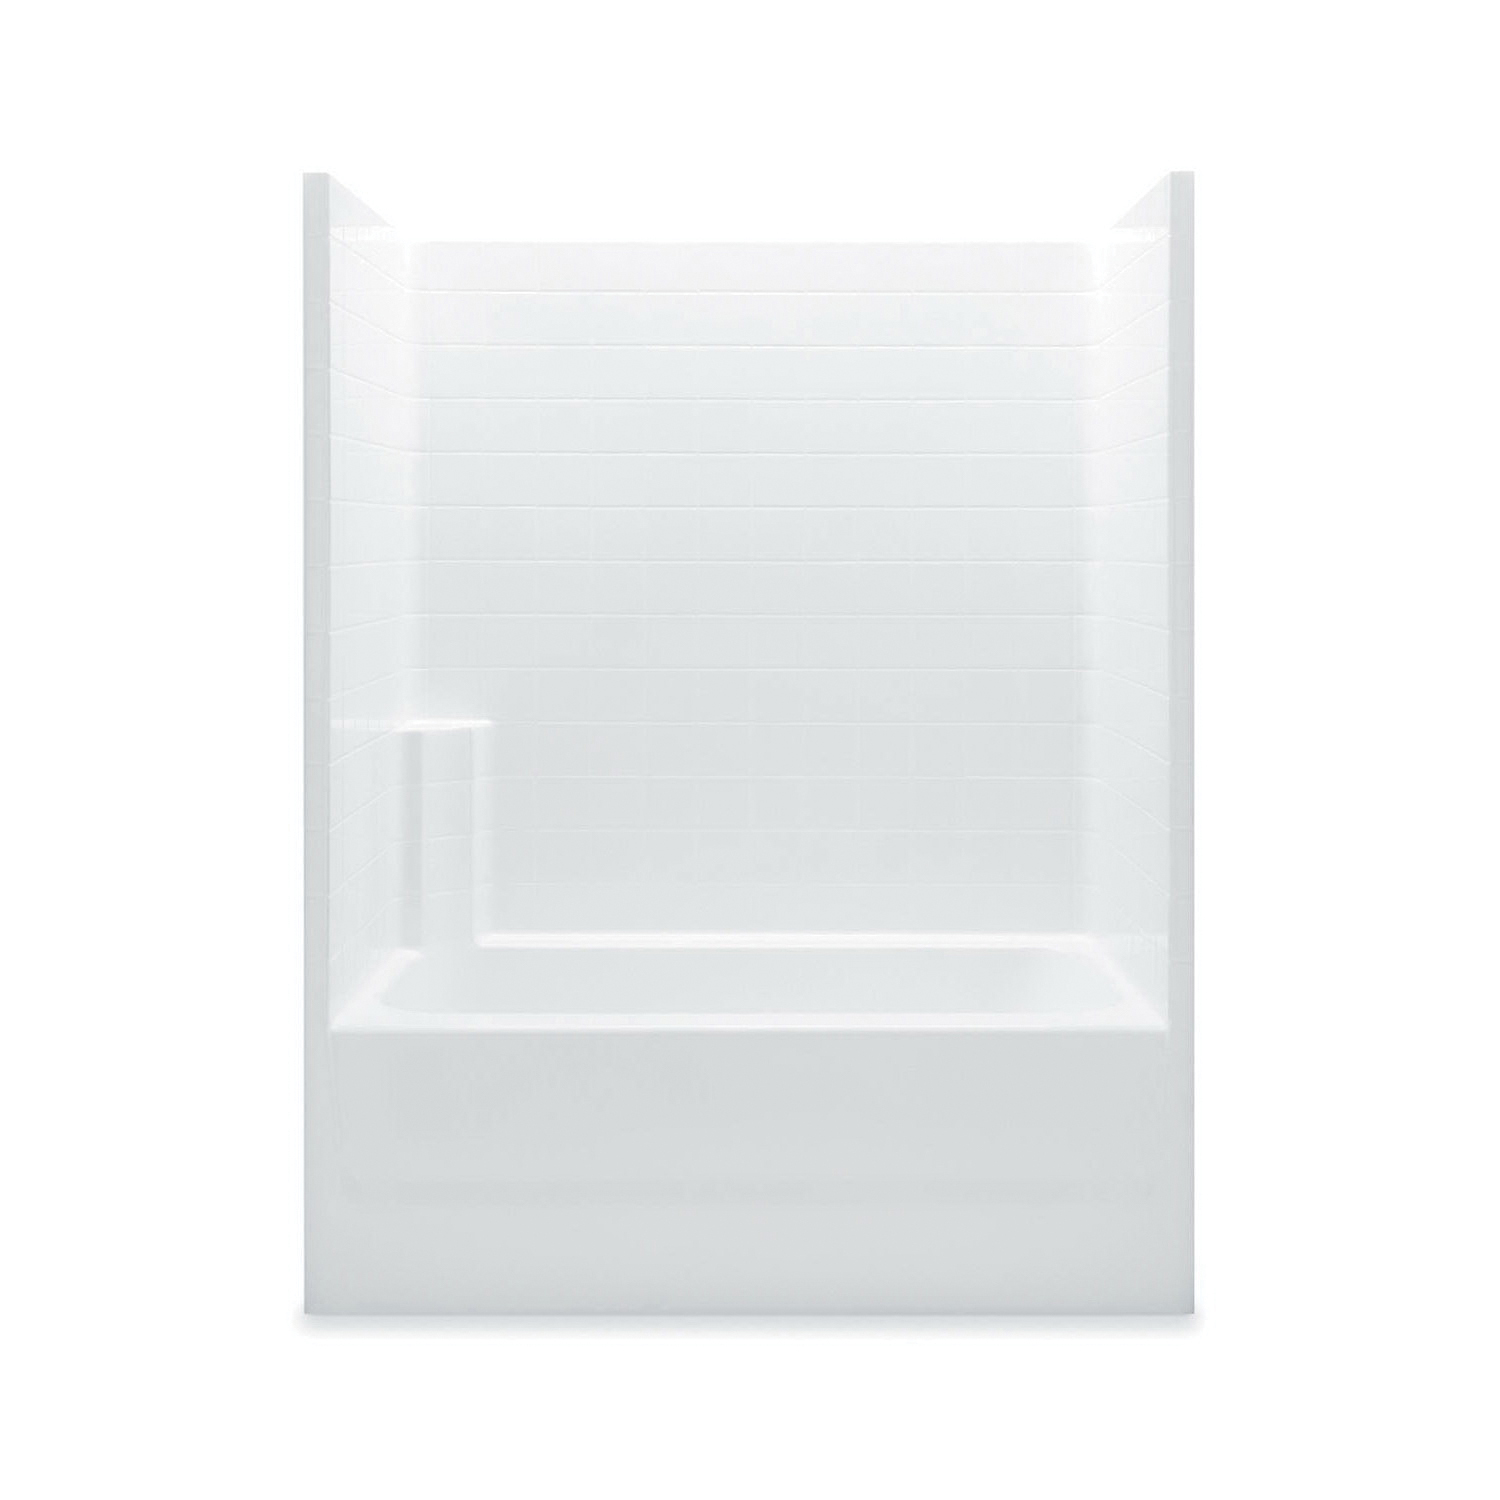 Aquatic 2603CTR-WH Everyday Tub Shower, 60 in W x 72 in H, Gel-Coated/White, Domestic